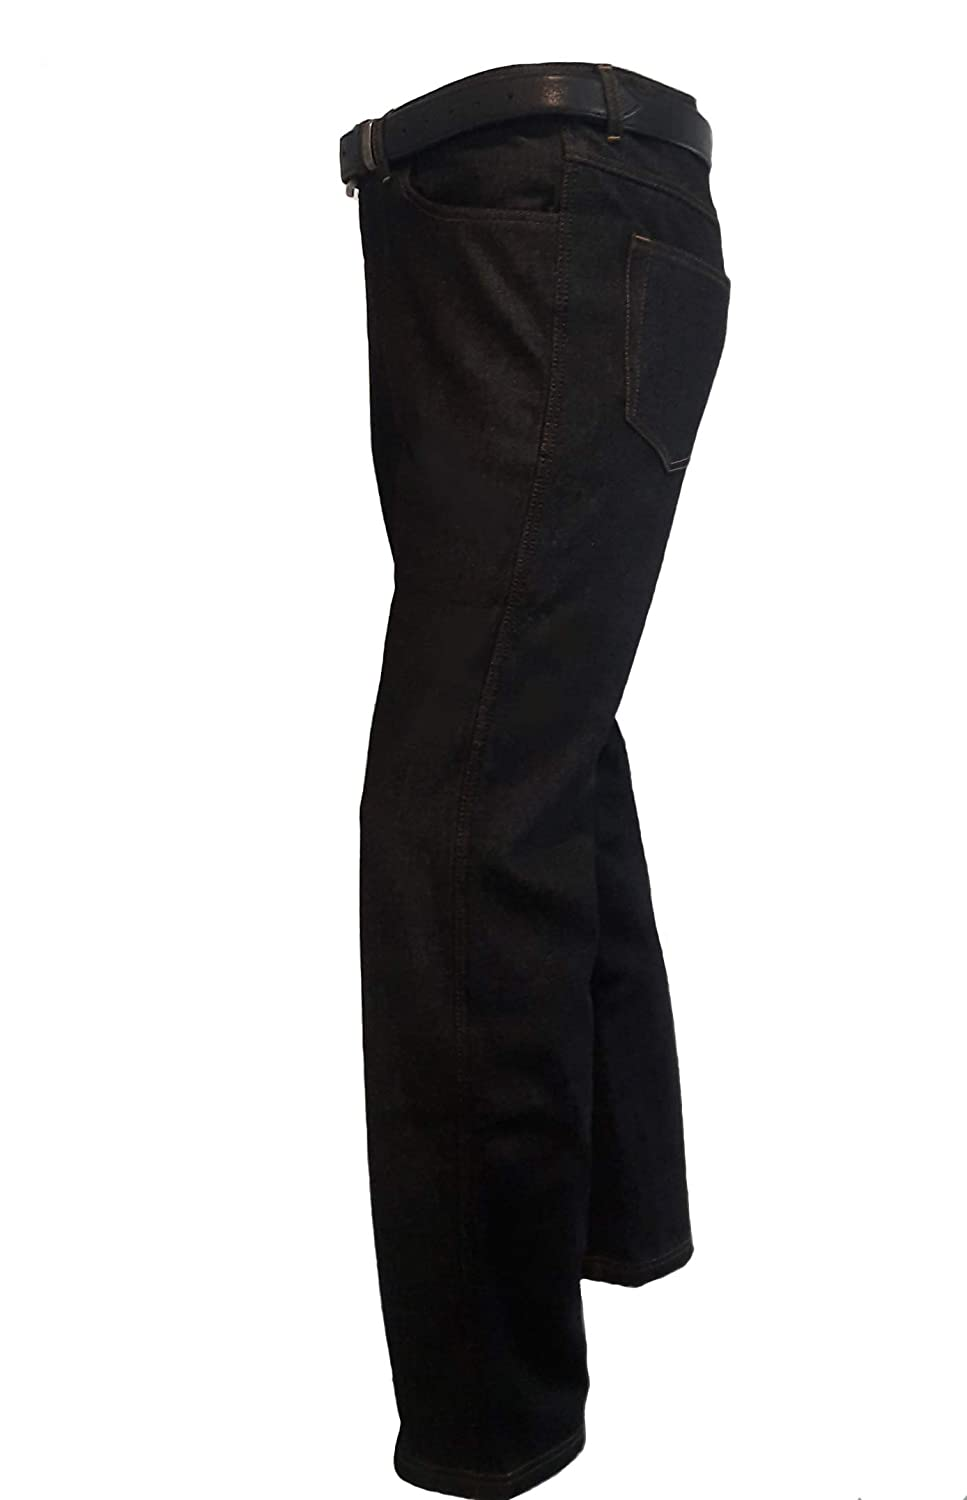 Roadskin Paranoid CE Approved Fully Lined Jean 32//32